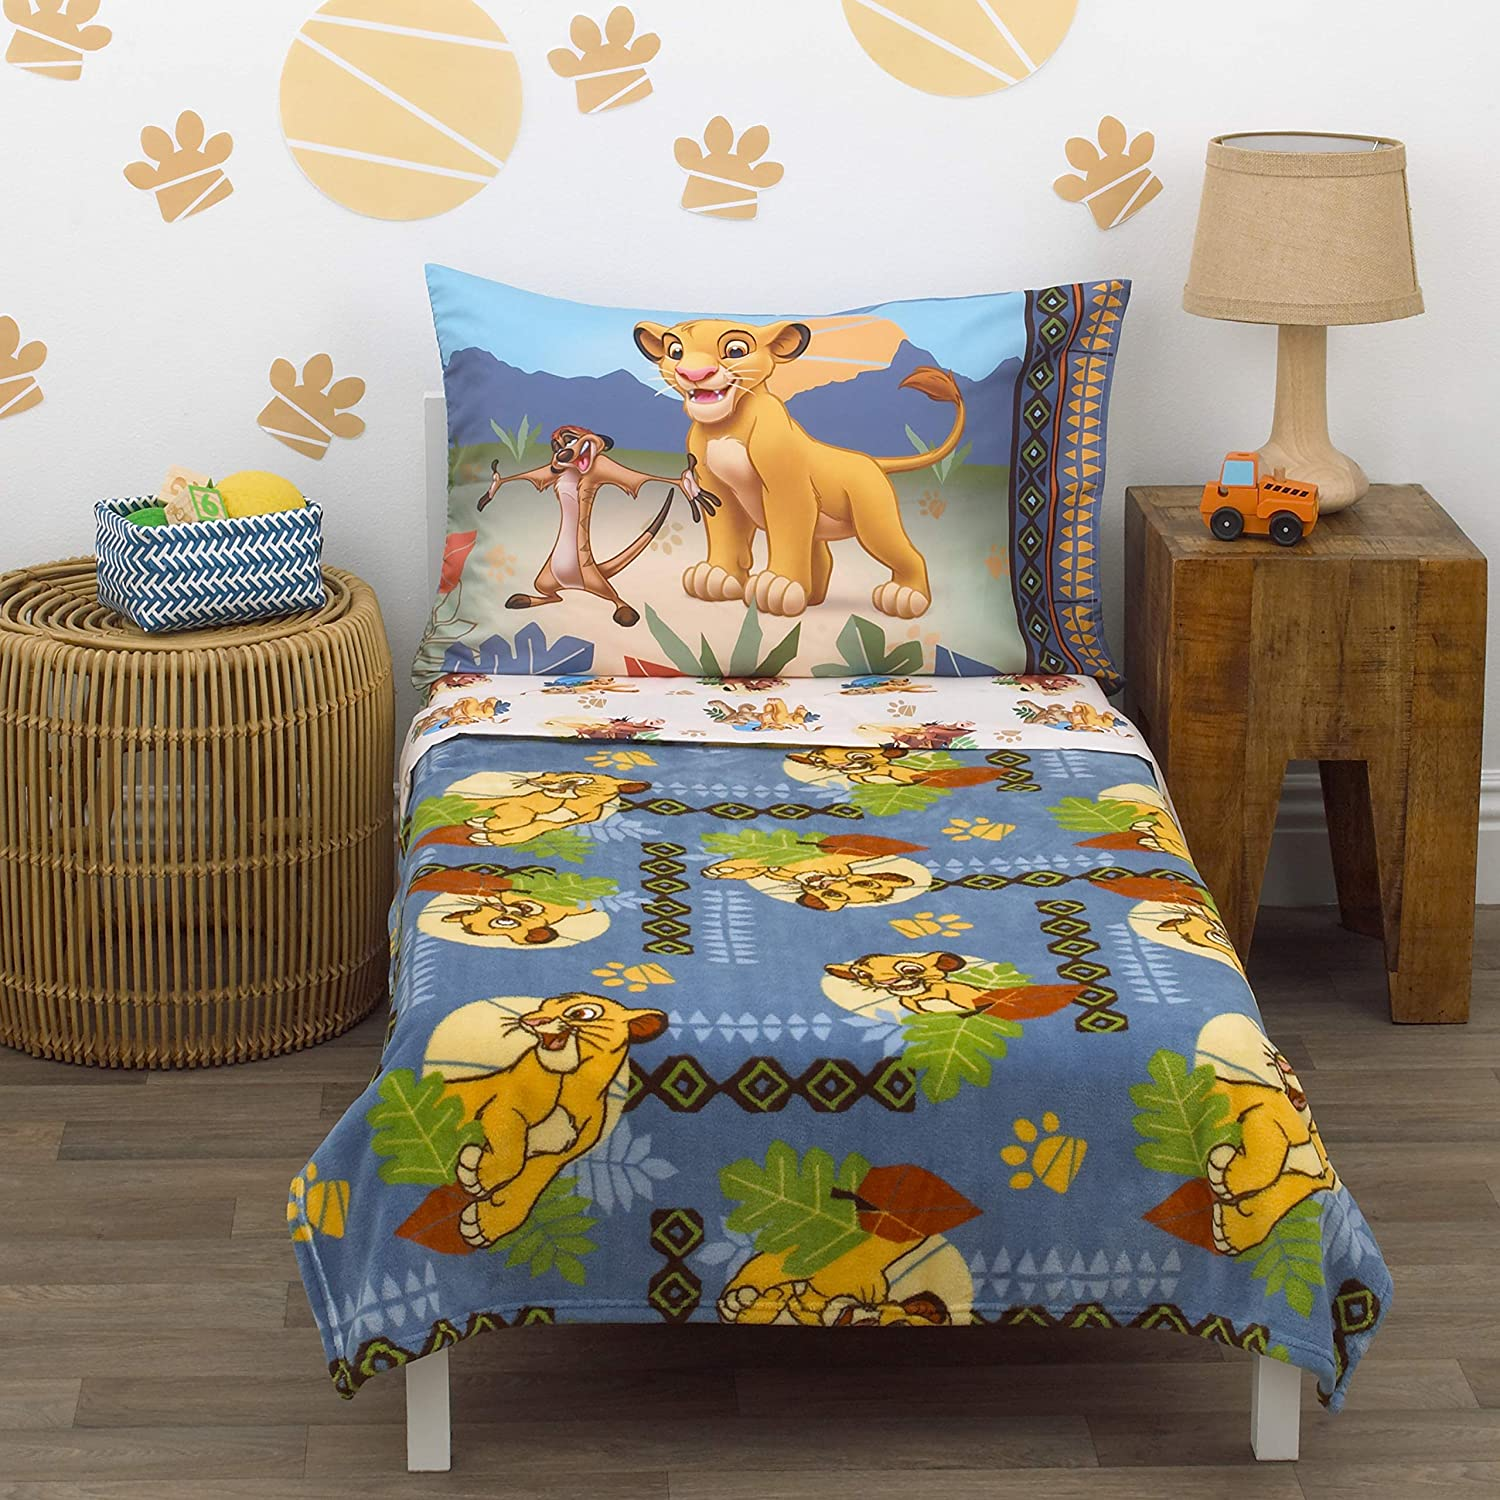 Disney Lion King - Totally Tribal - 4Piece Toddler Bed Set - Coral Fleece Toddler Blanket, Fitted Bottom Sheet, Flat Top Sheet, Standard Size Pillowcase, Blue, Green, Brown, Brown Gold